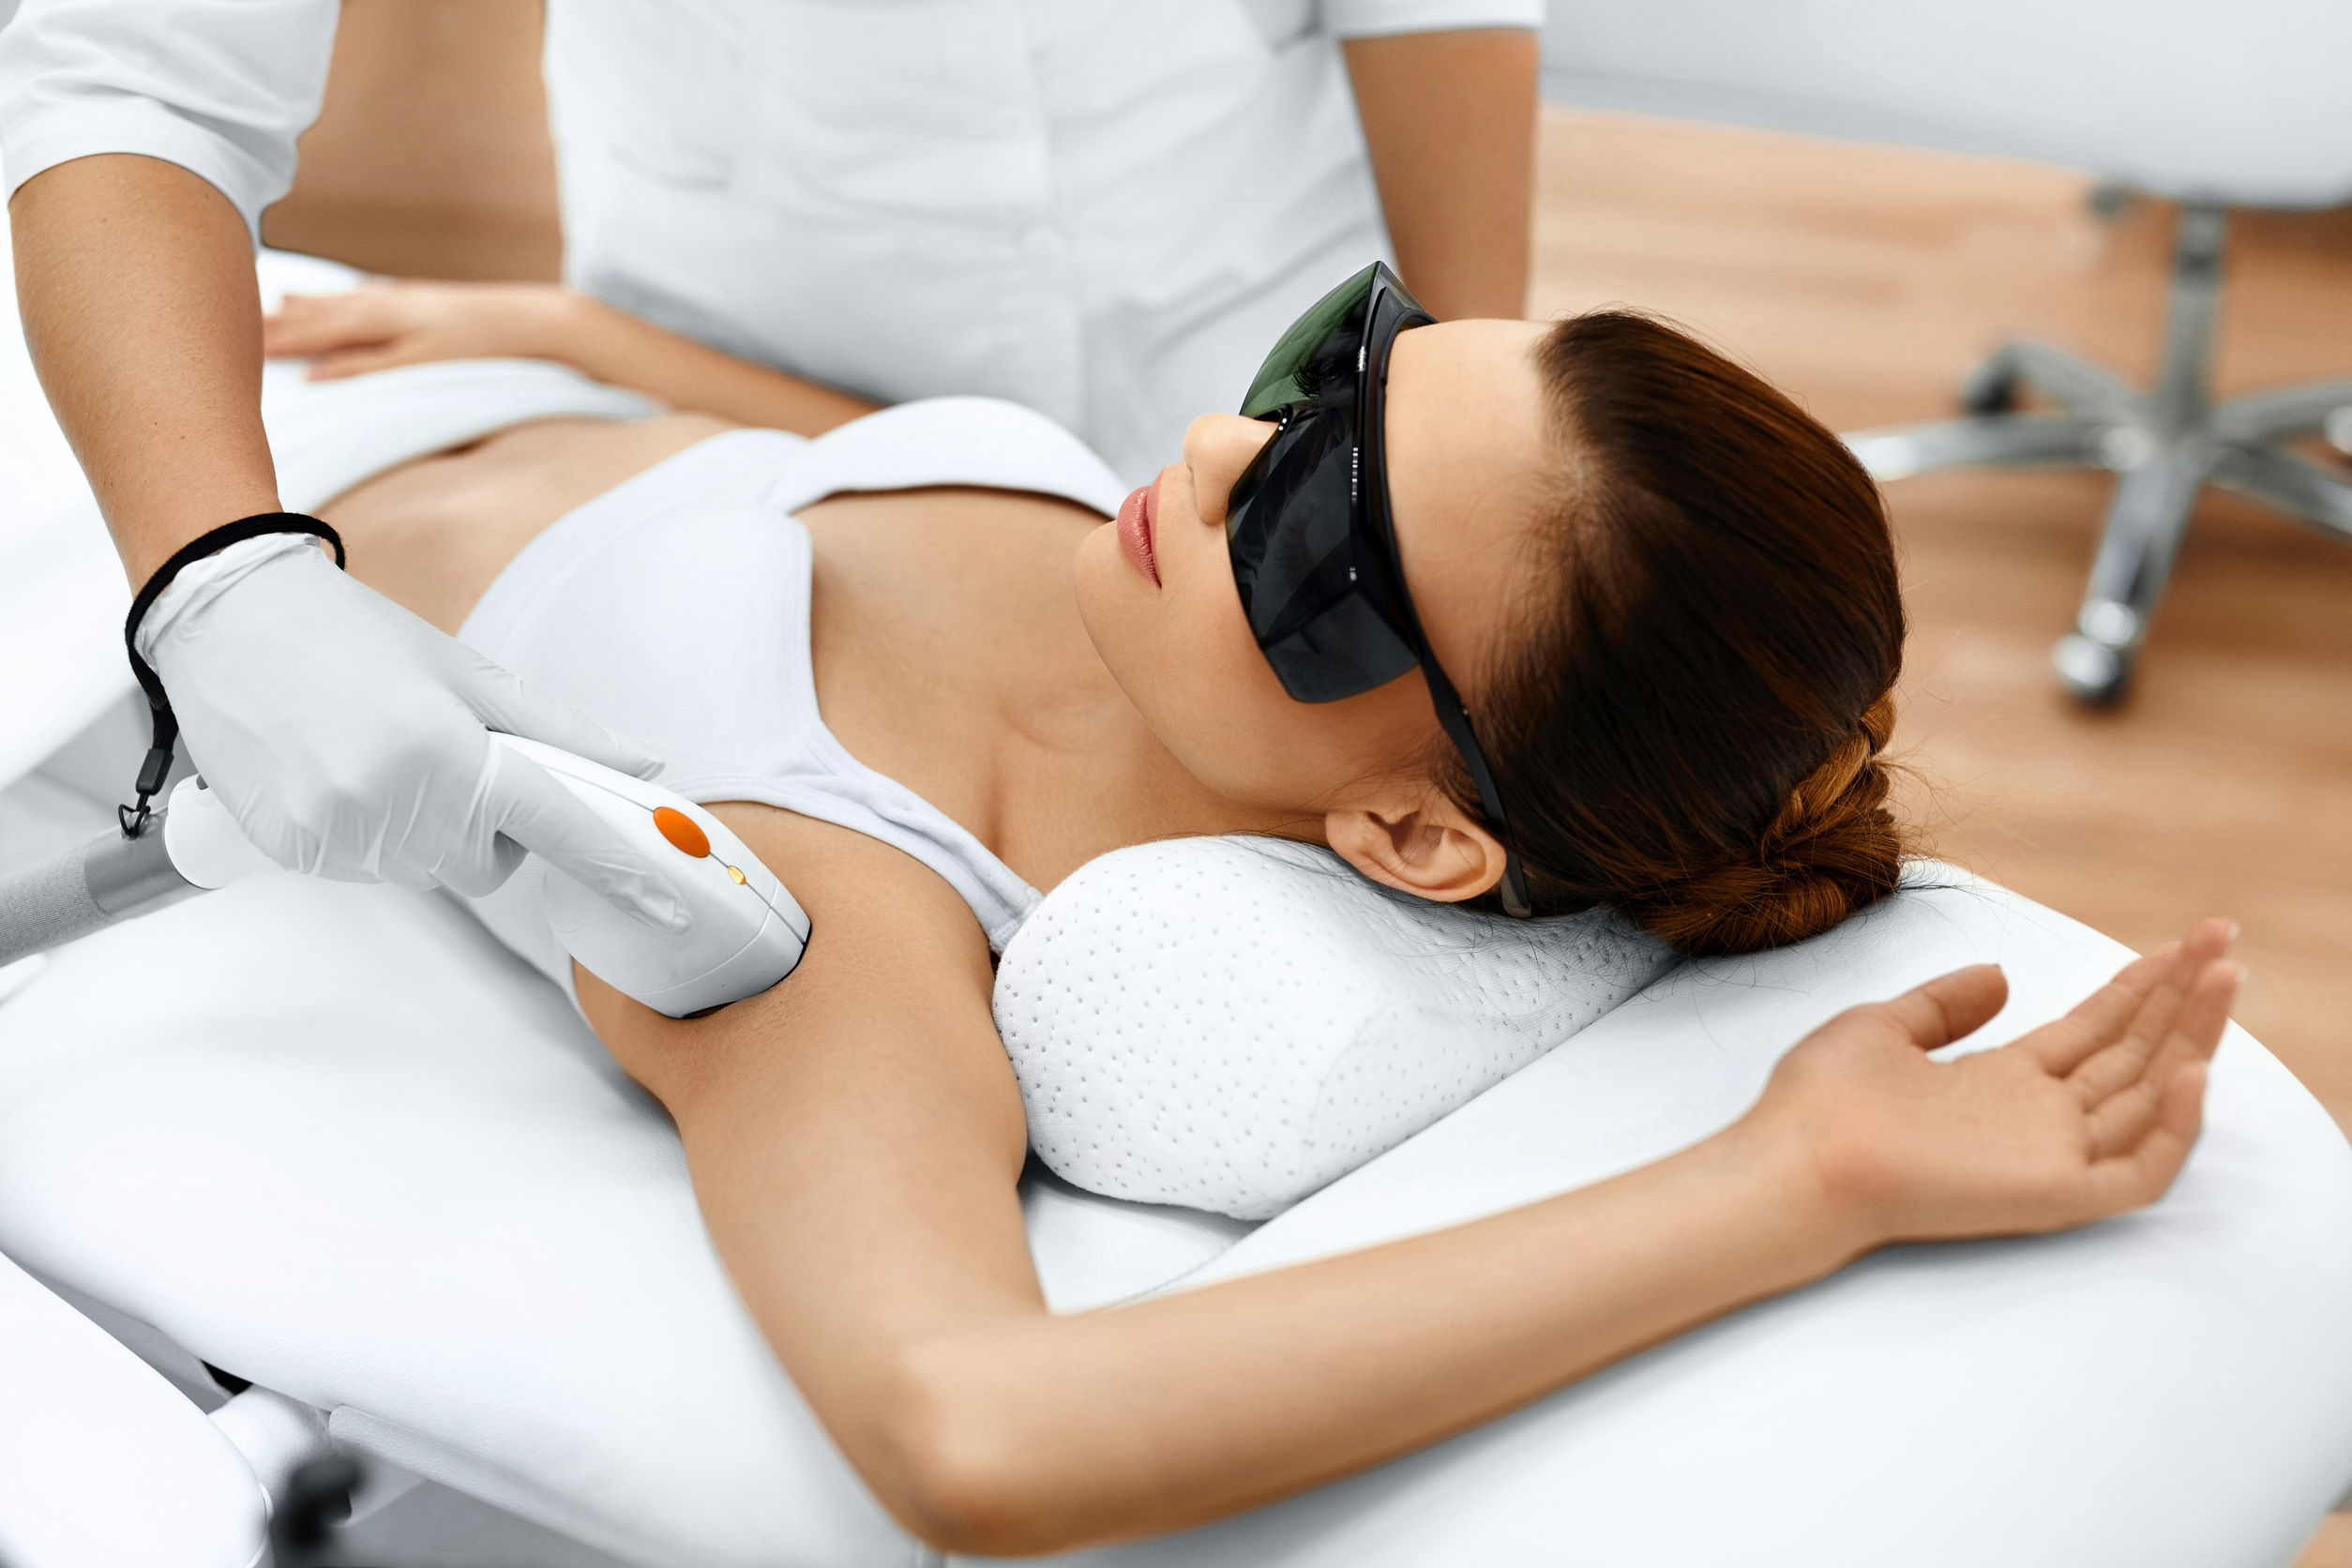 6. Laser Hair Removal